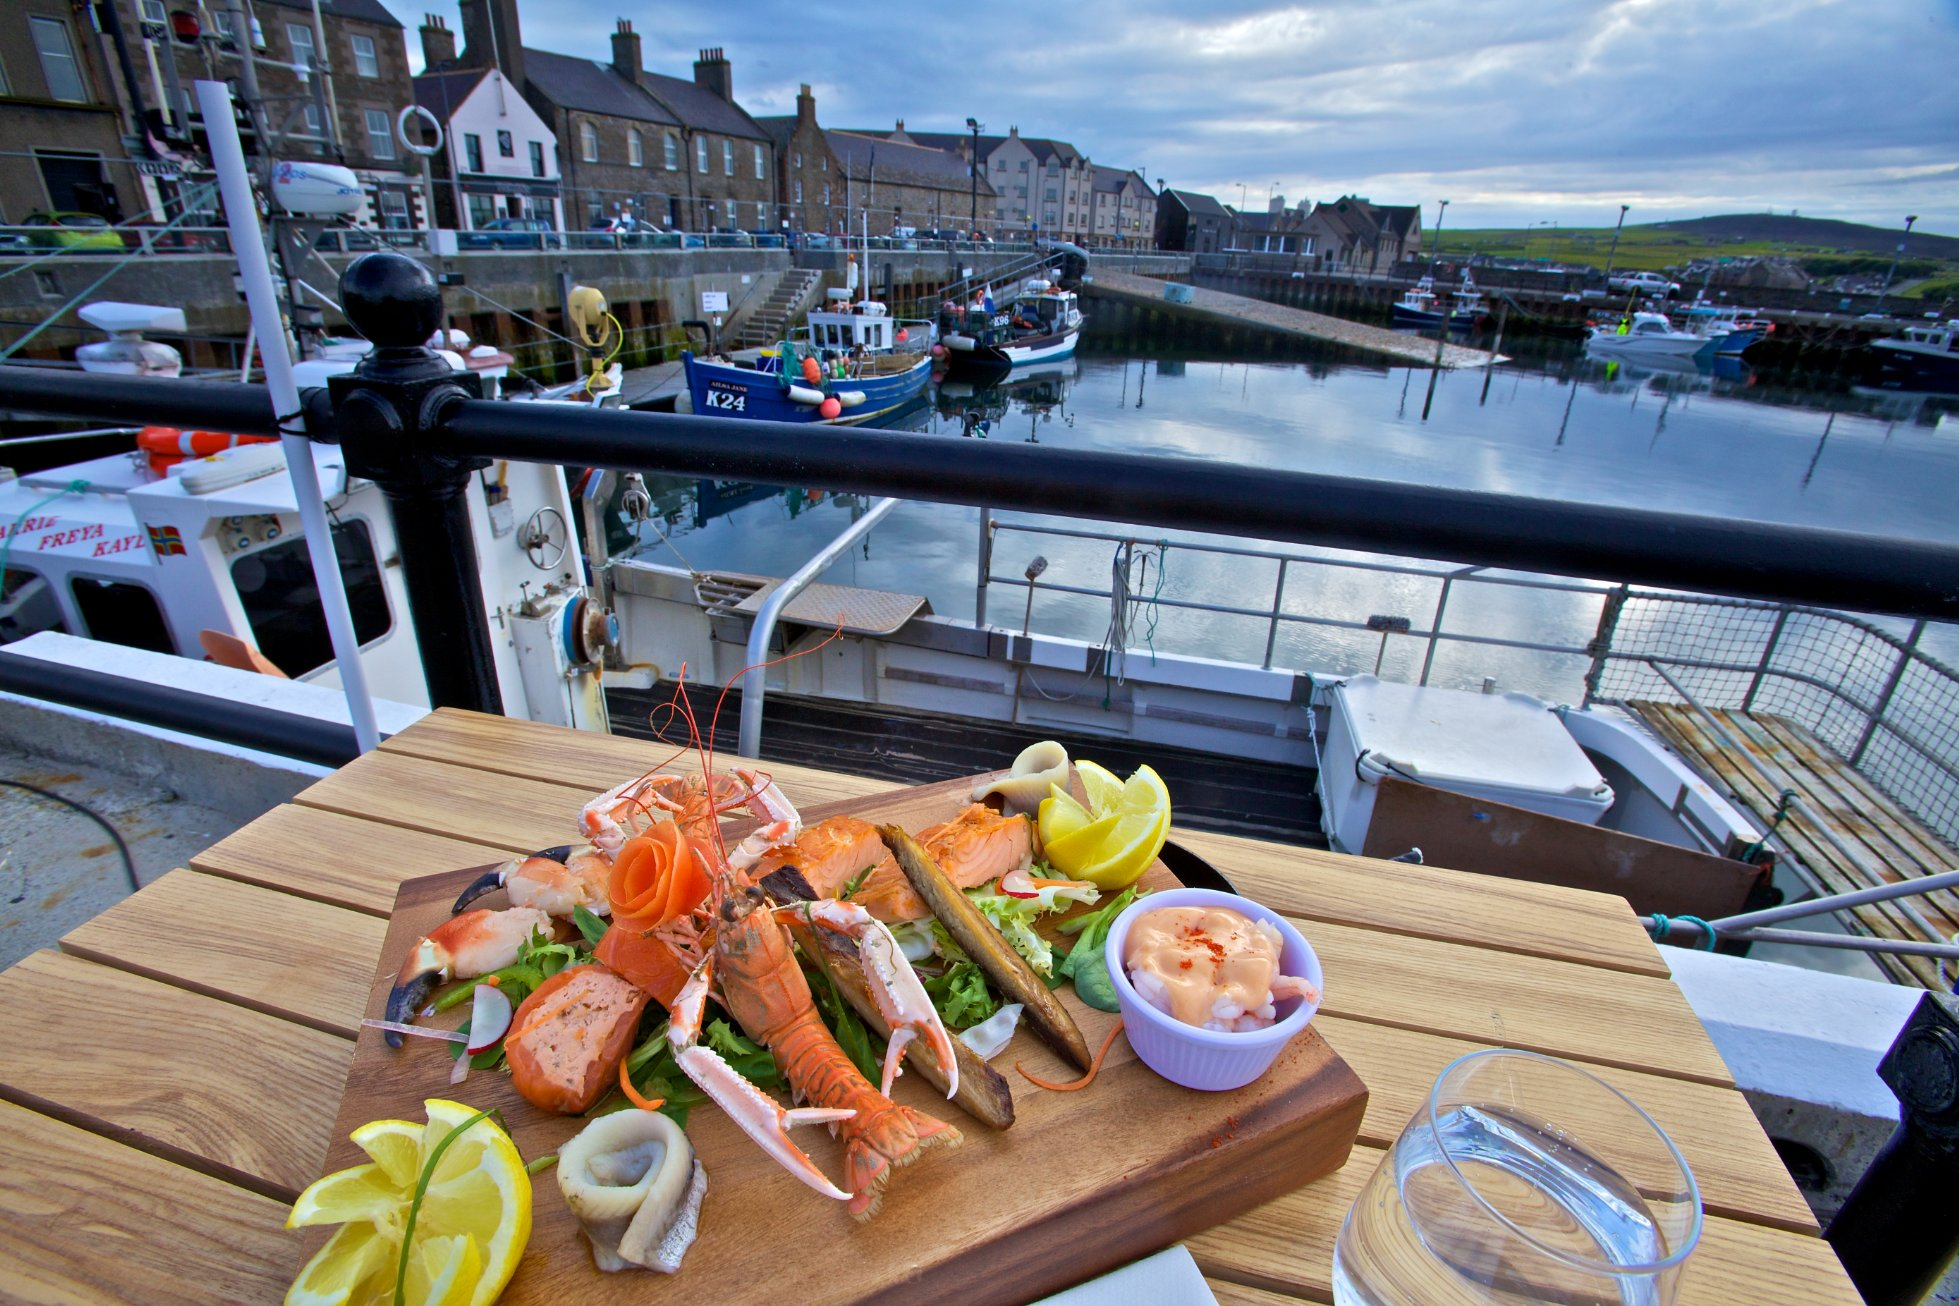 Seafood at Kirkwall Harbour - image by Colin Keldie